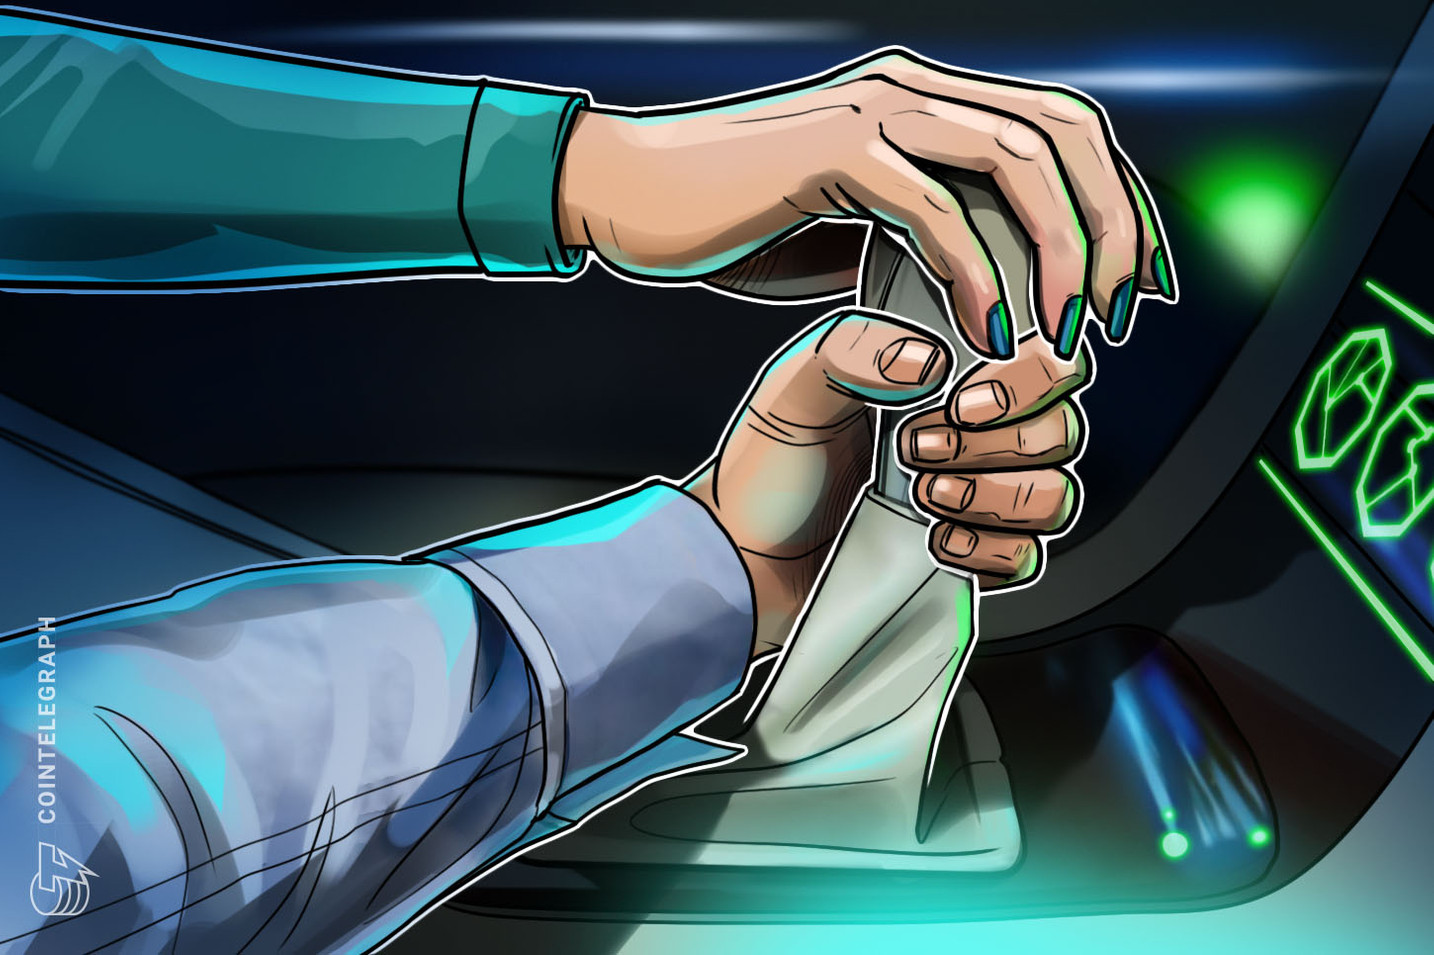 Federal Preemption or States' Rights? Crypto Advocates Clash Over Regulatory Approaches